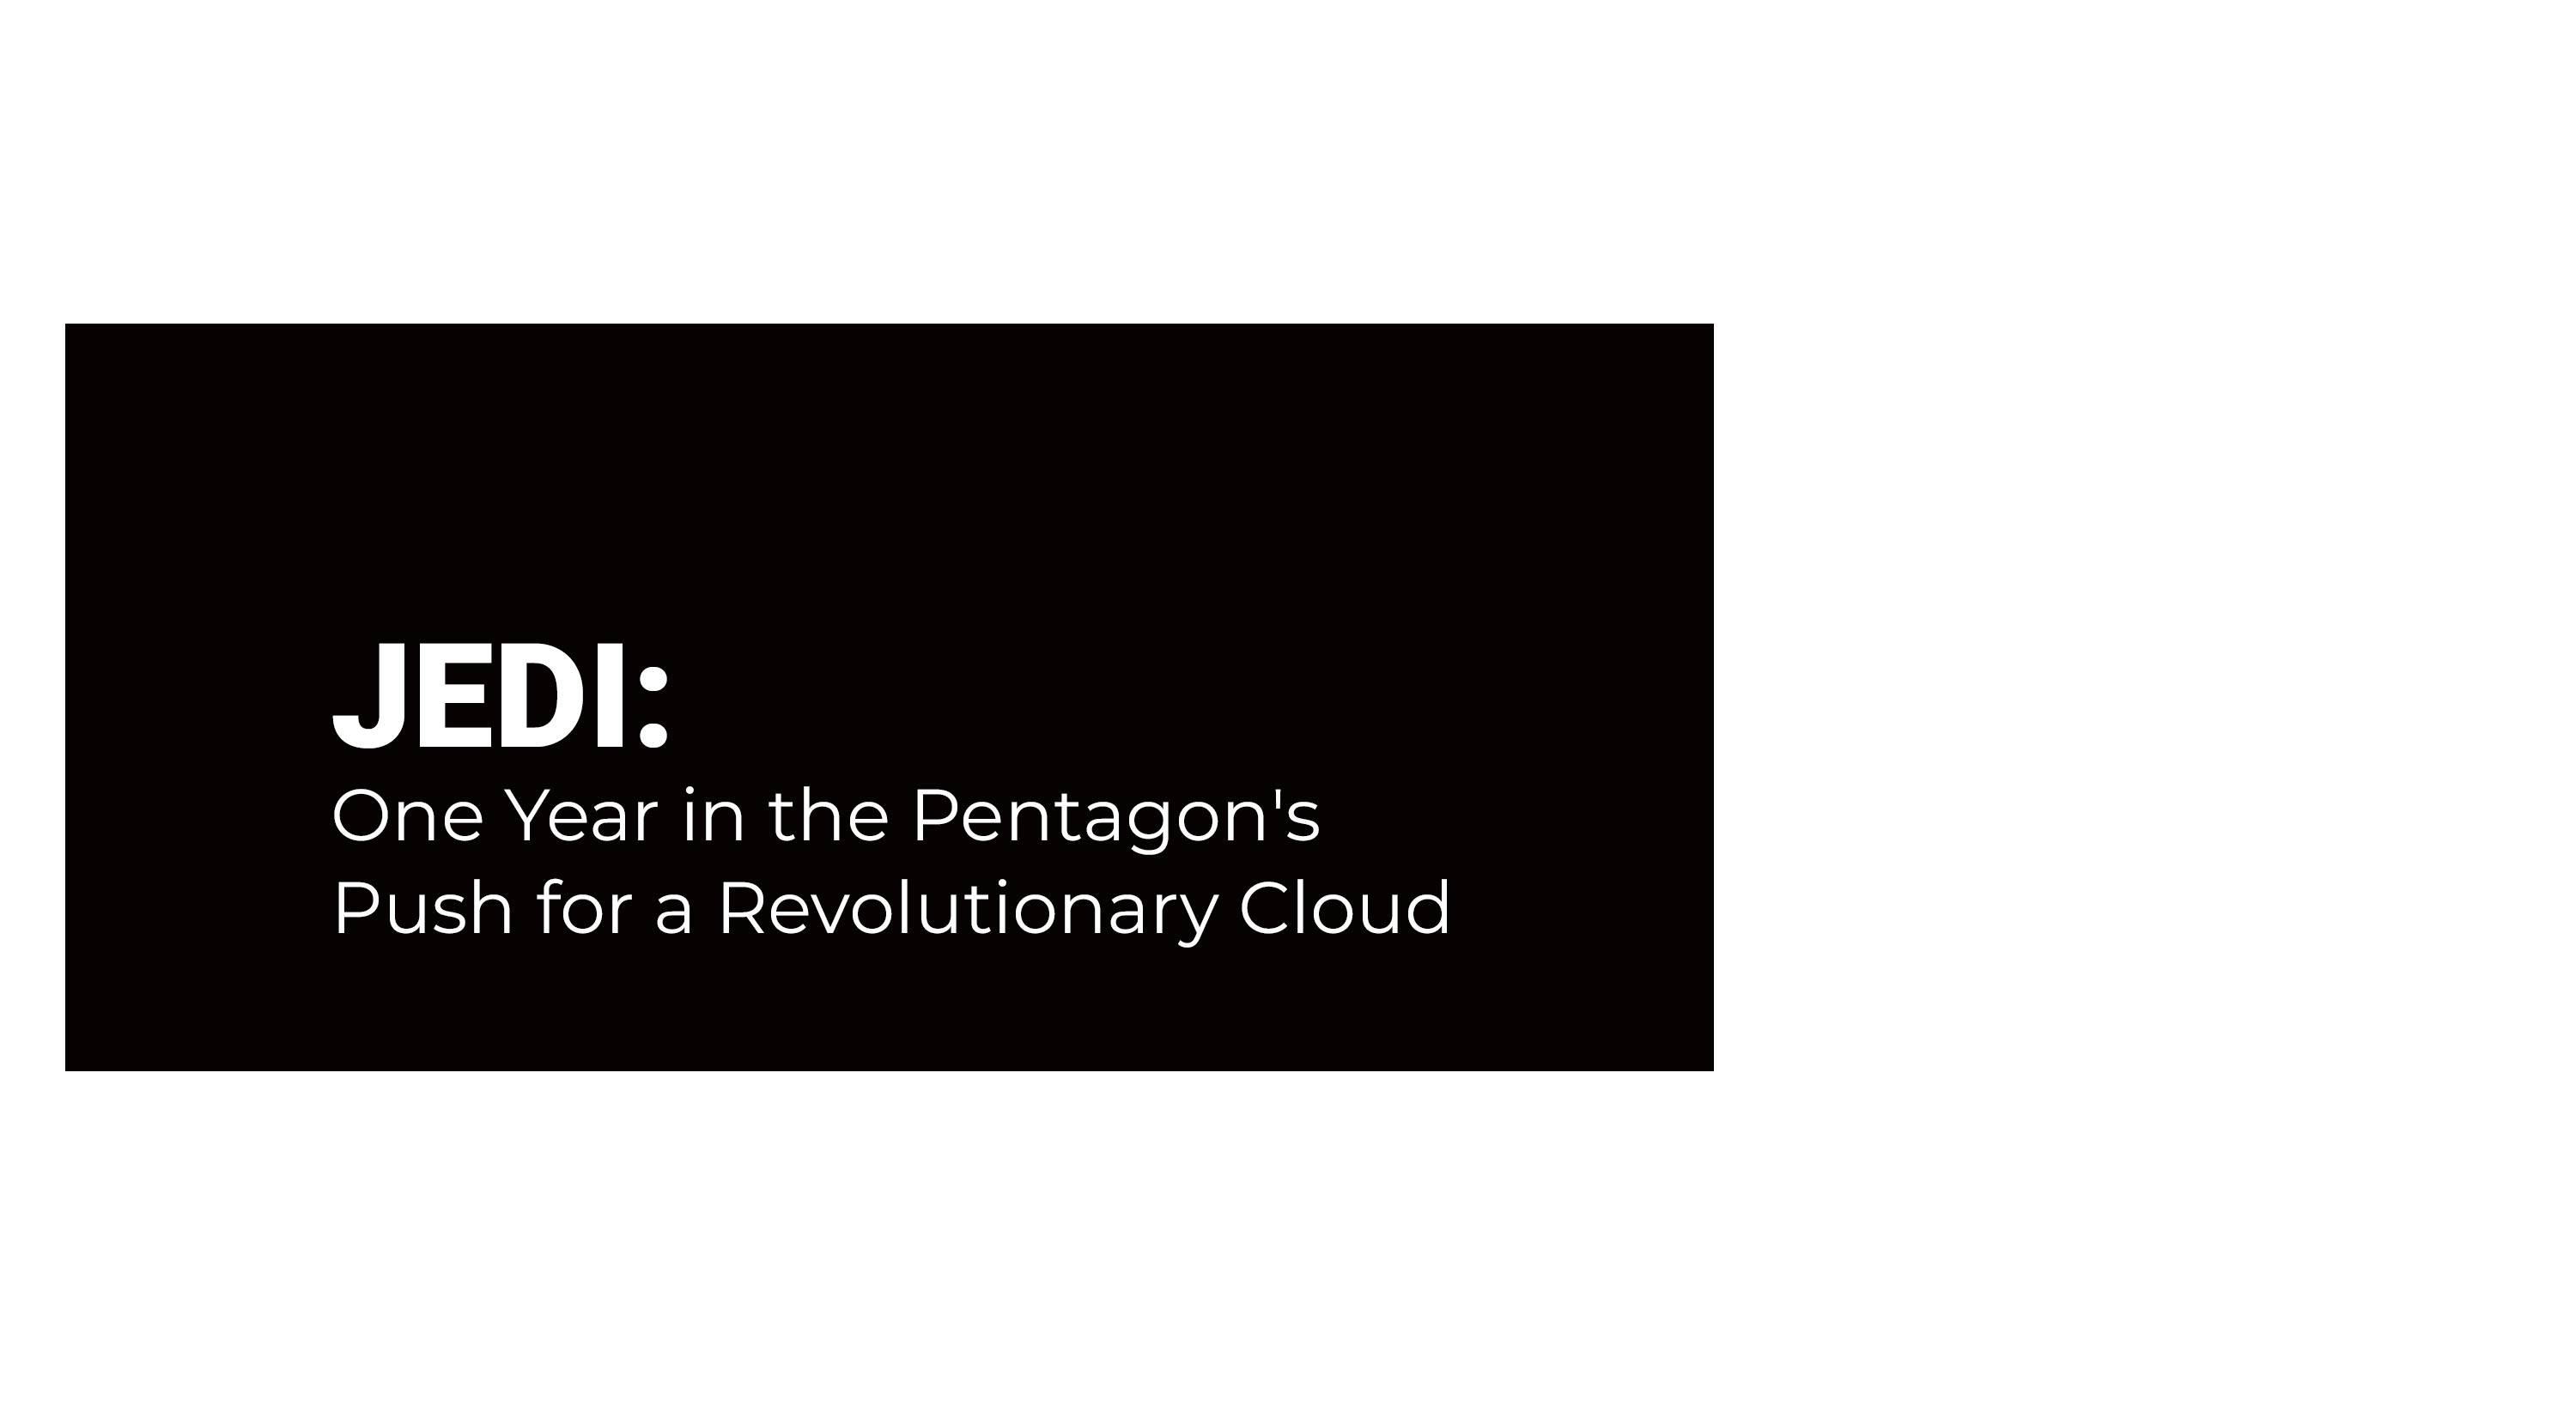 JEDI: One Year in the Pentagon's Push for a Revolutionary Cloud